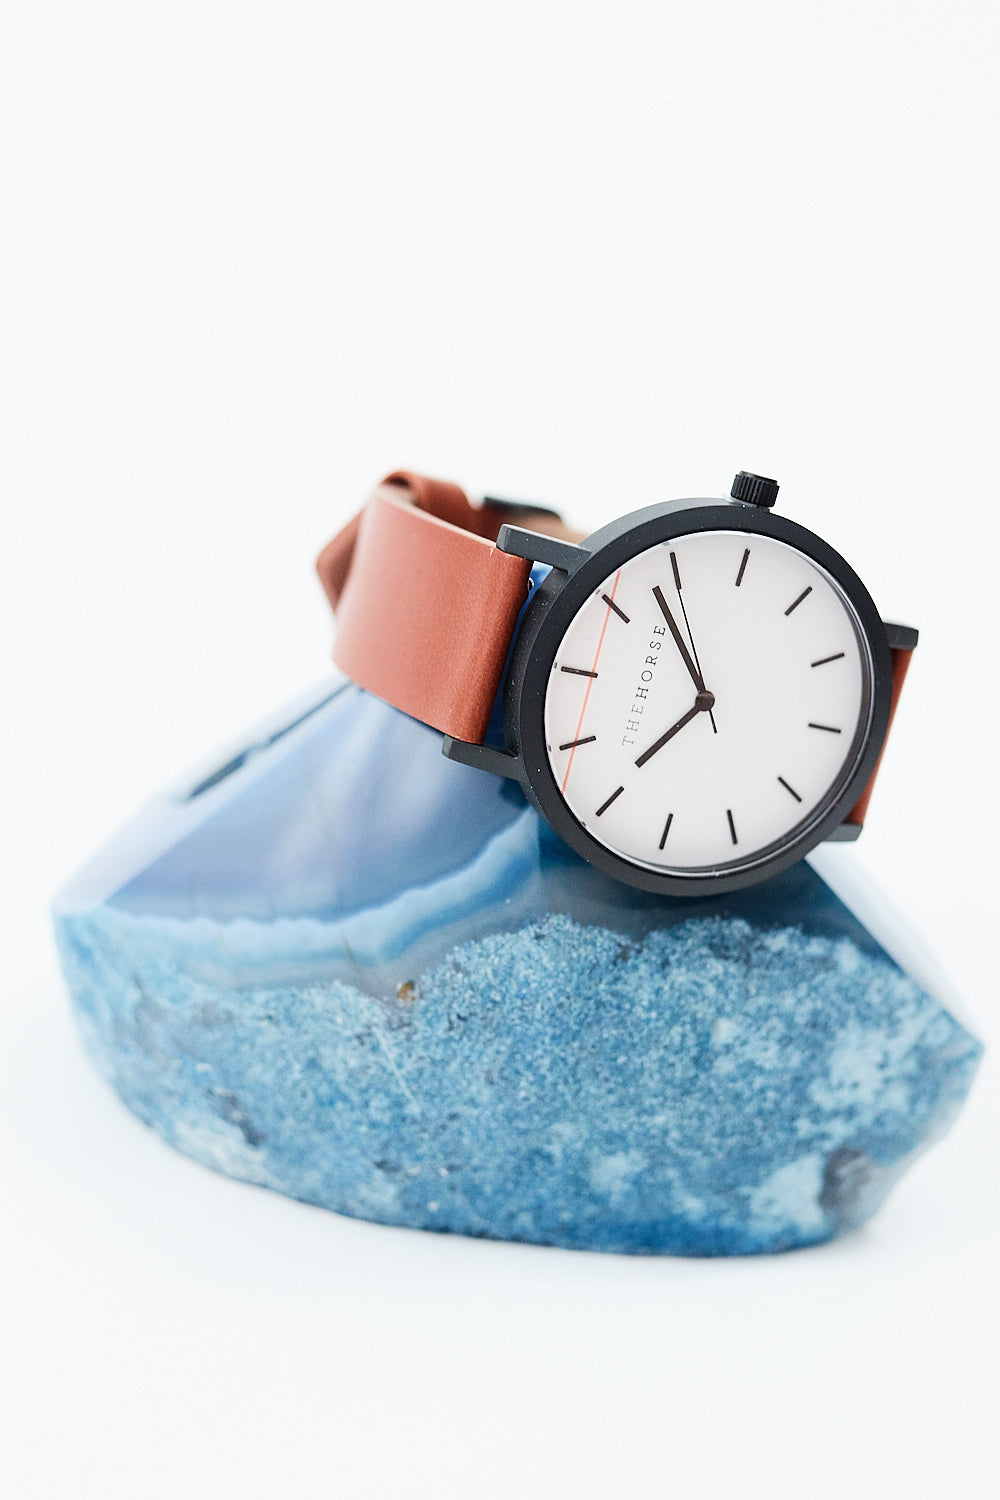 The Original Watch / The Stone Watch